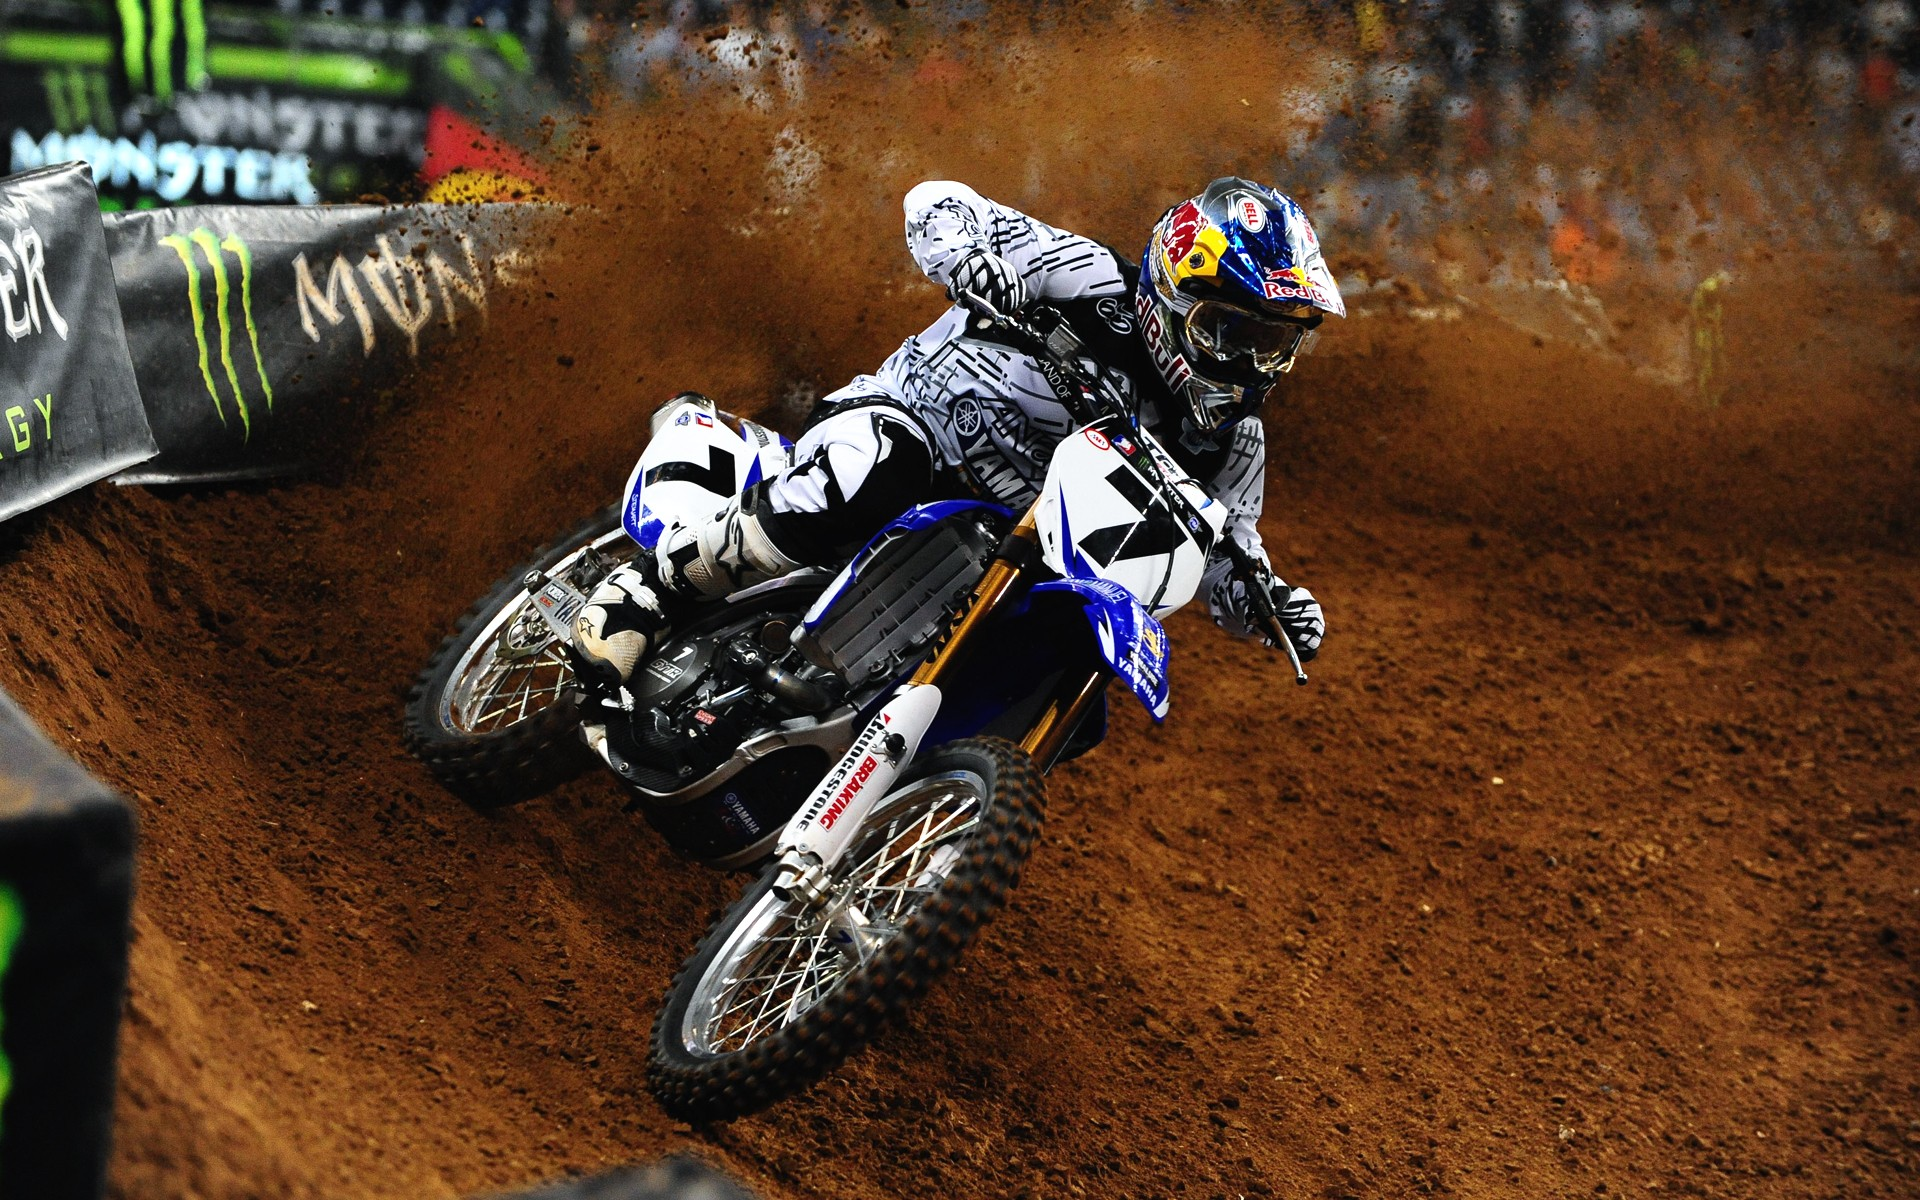 Motocross wallpapers pictures images motocross widescreen wallpaper voltagebd Image collections